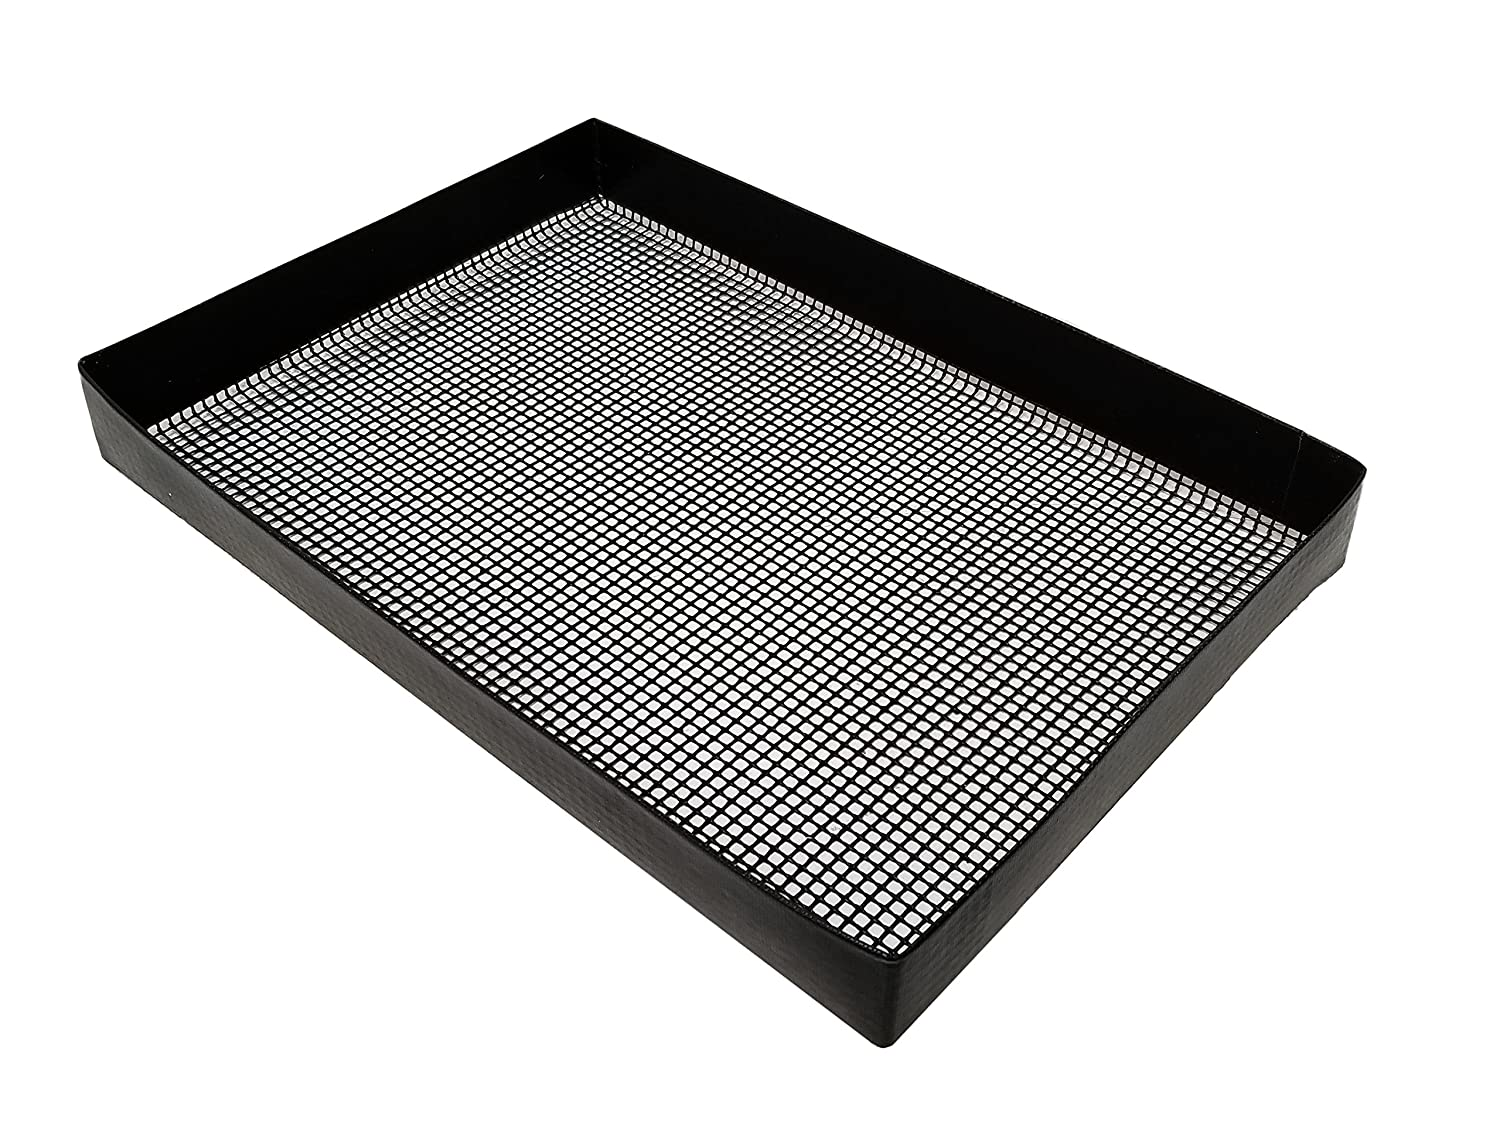 """10"""" x 14.375"""" x 1.5"""" PTFE Wide Mesh Oven basket for TurboChef, Merrychef, and Amana, and Amana, can also be used in smokers and grills"""